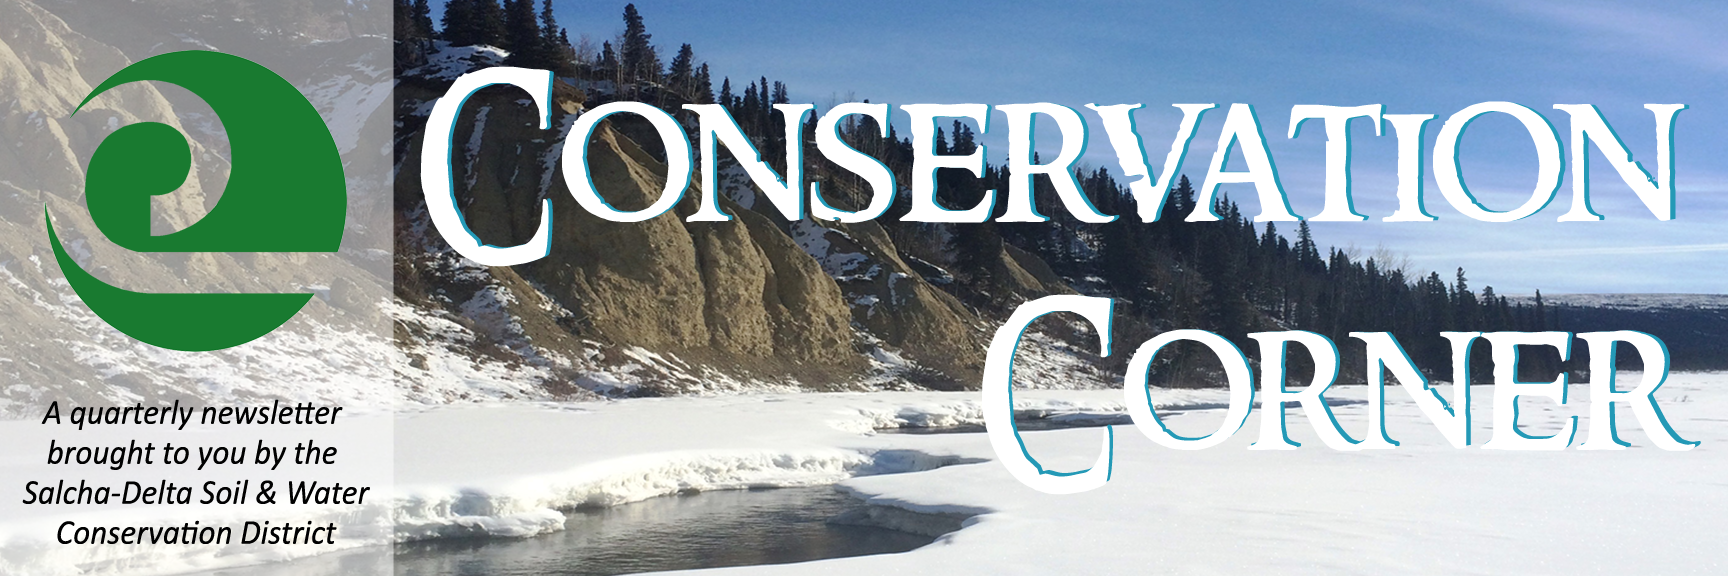 Conservation Corner newsletter